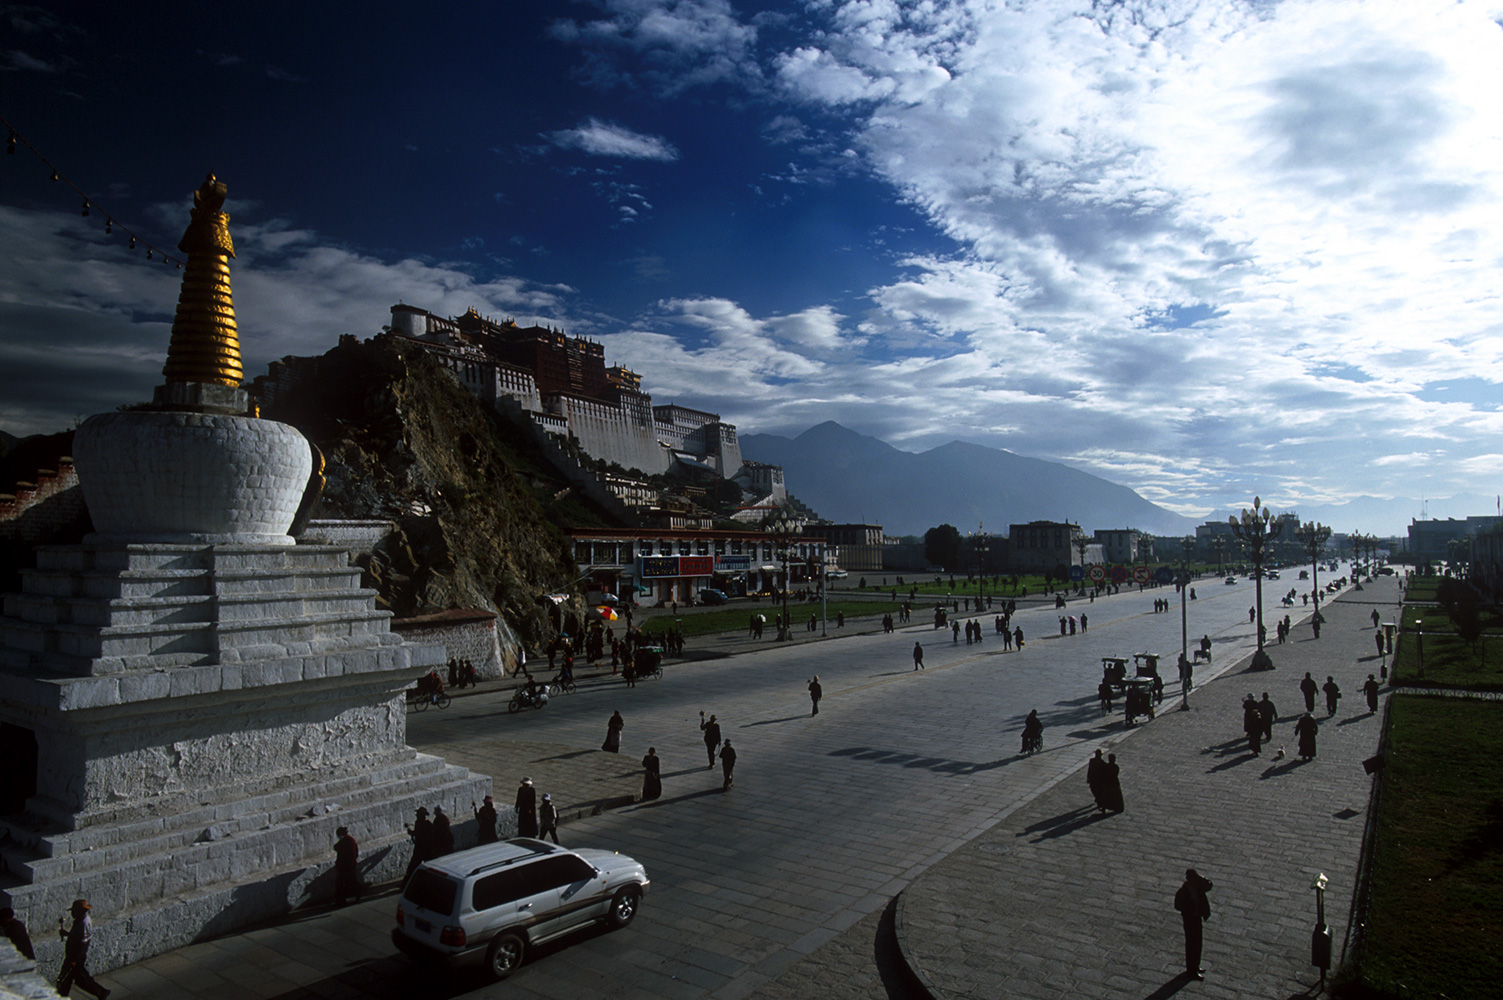 The Potala, seen from the base of Chokpuri Hill. The old West Gate to the city was here, demolished long ago by the Chinese to make way for the modern road.Nikon F5, 17mm, Fuji Velvia